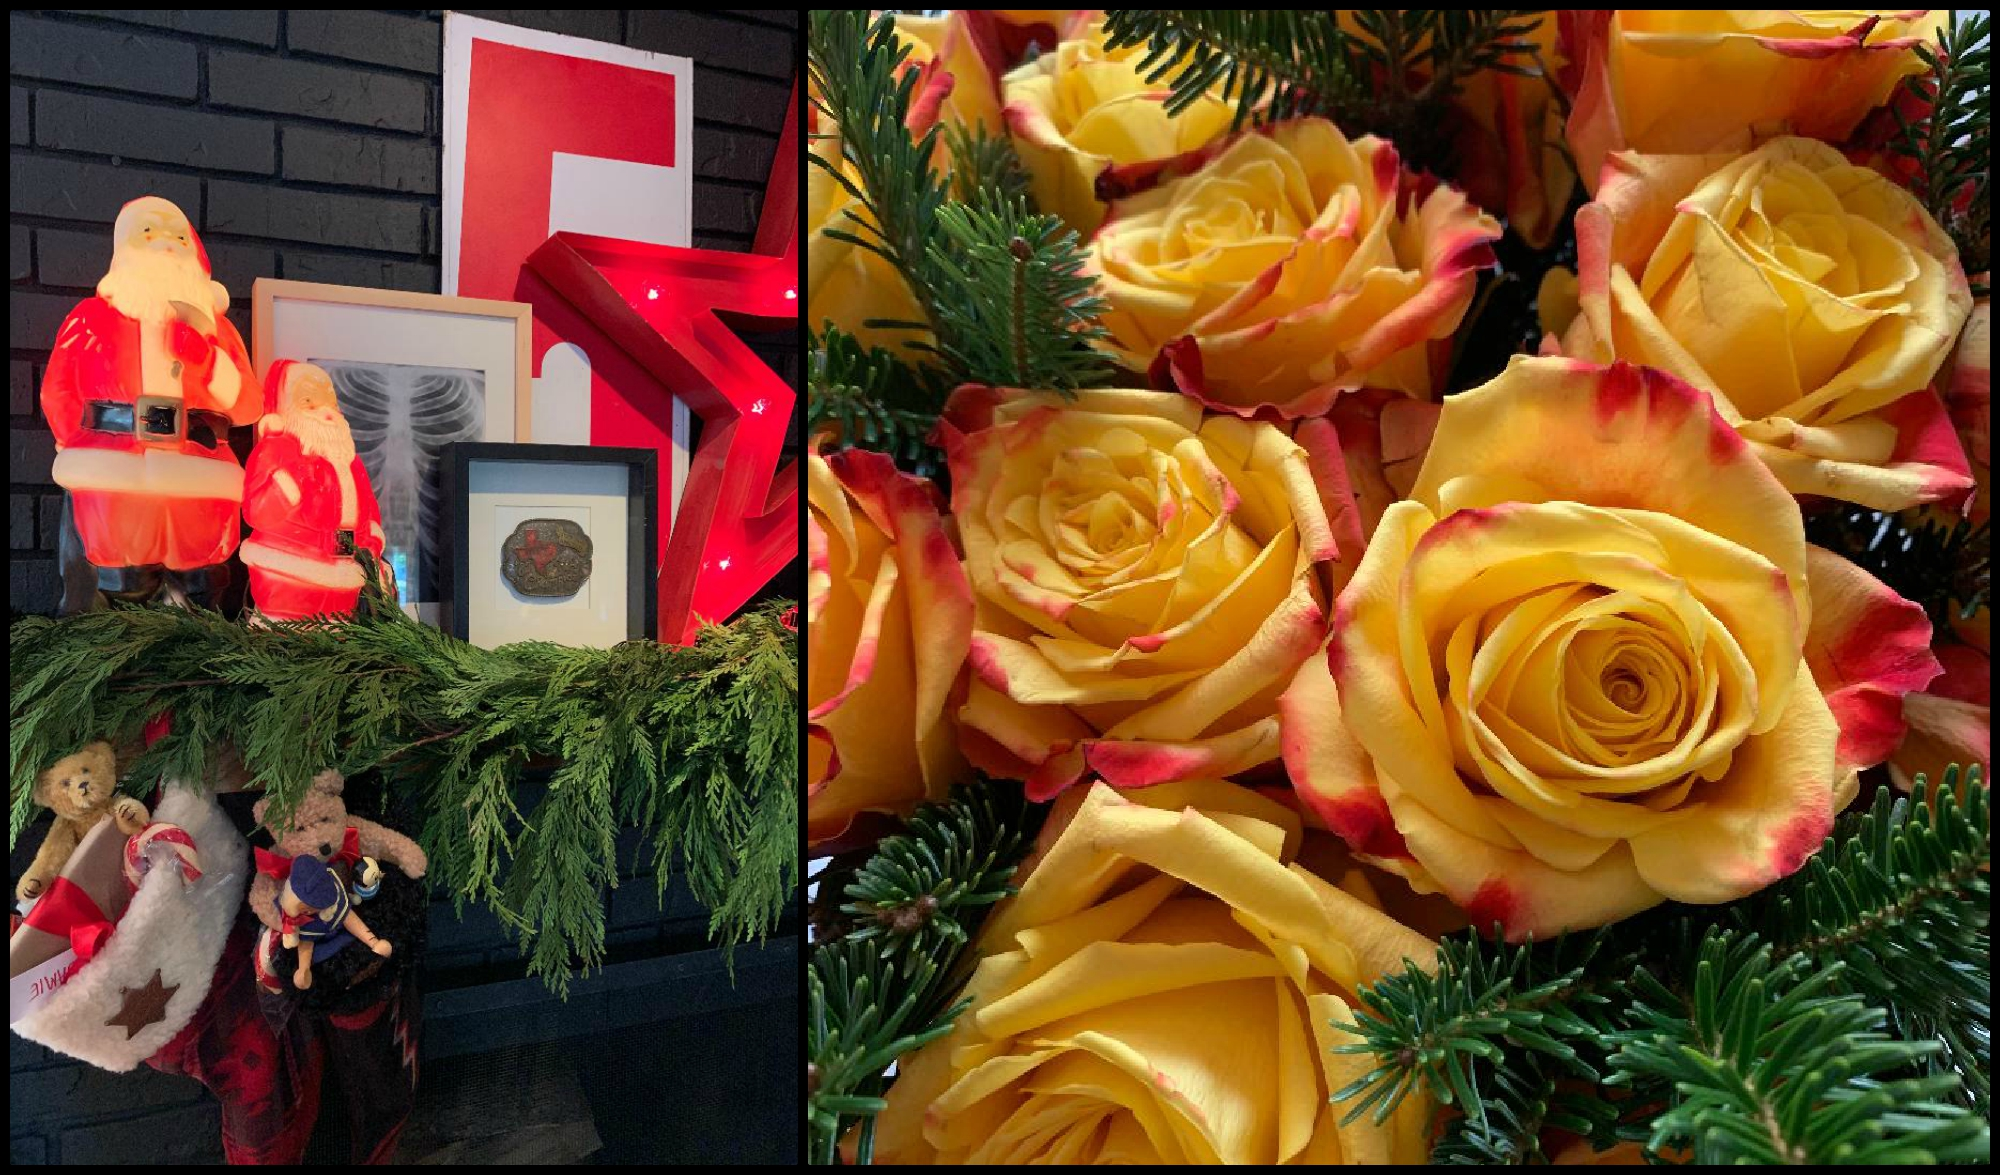 Mantle Scape and Roses Collage